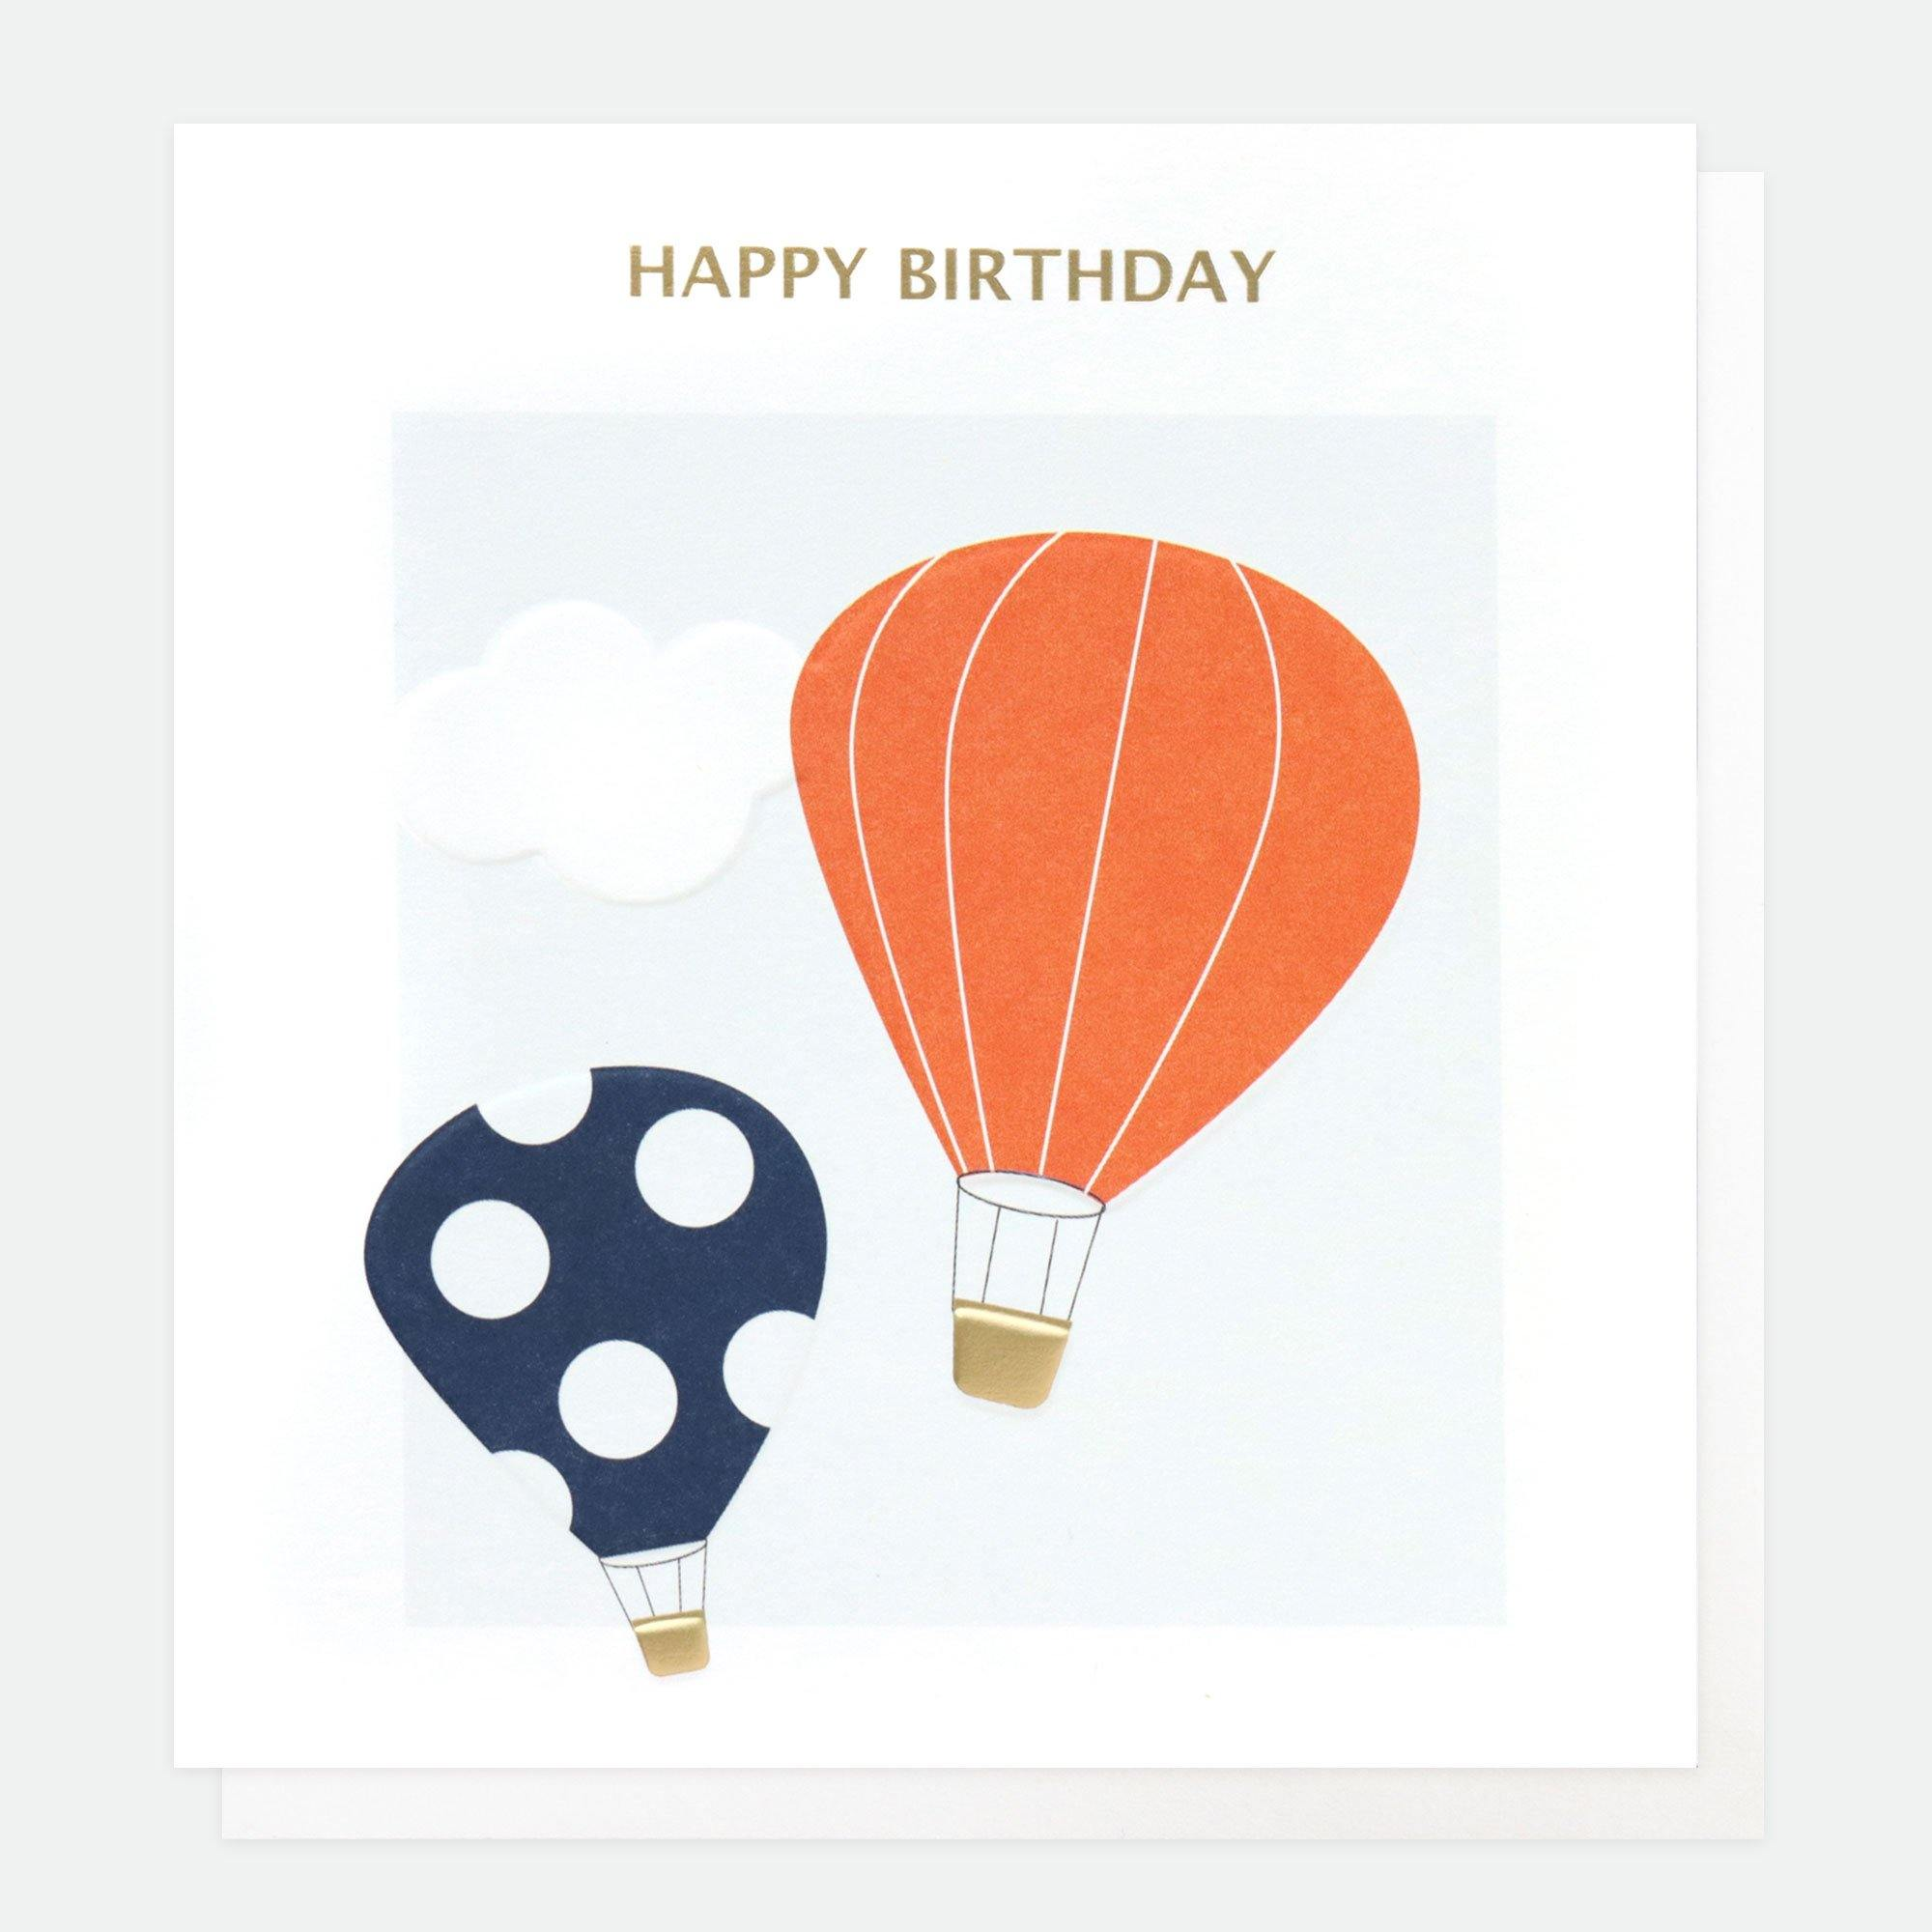 Happy Birthday Hot Air Balloons, Gift Giving by Insideout